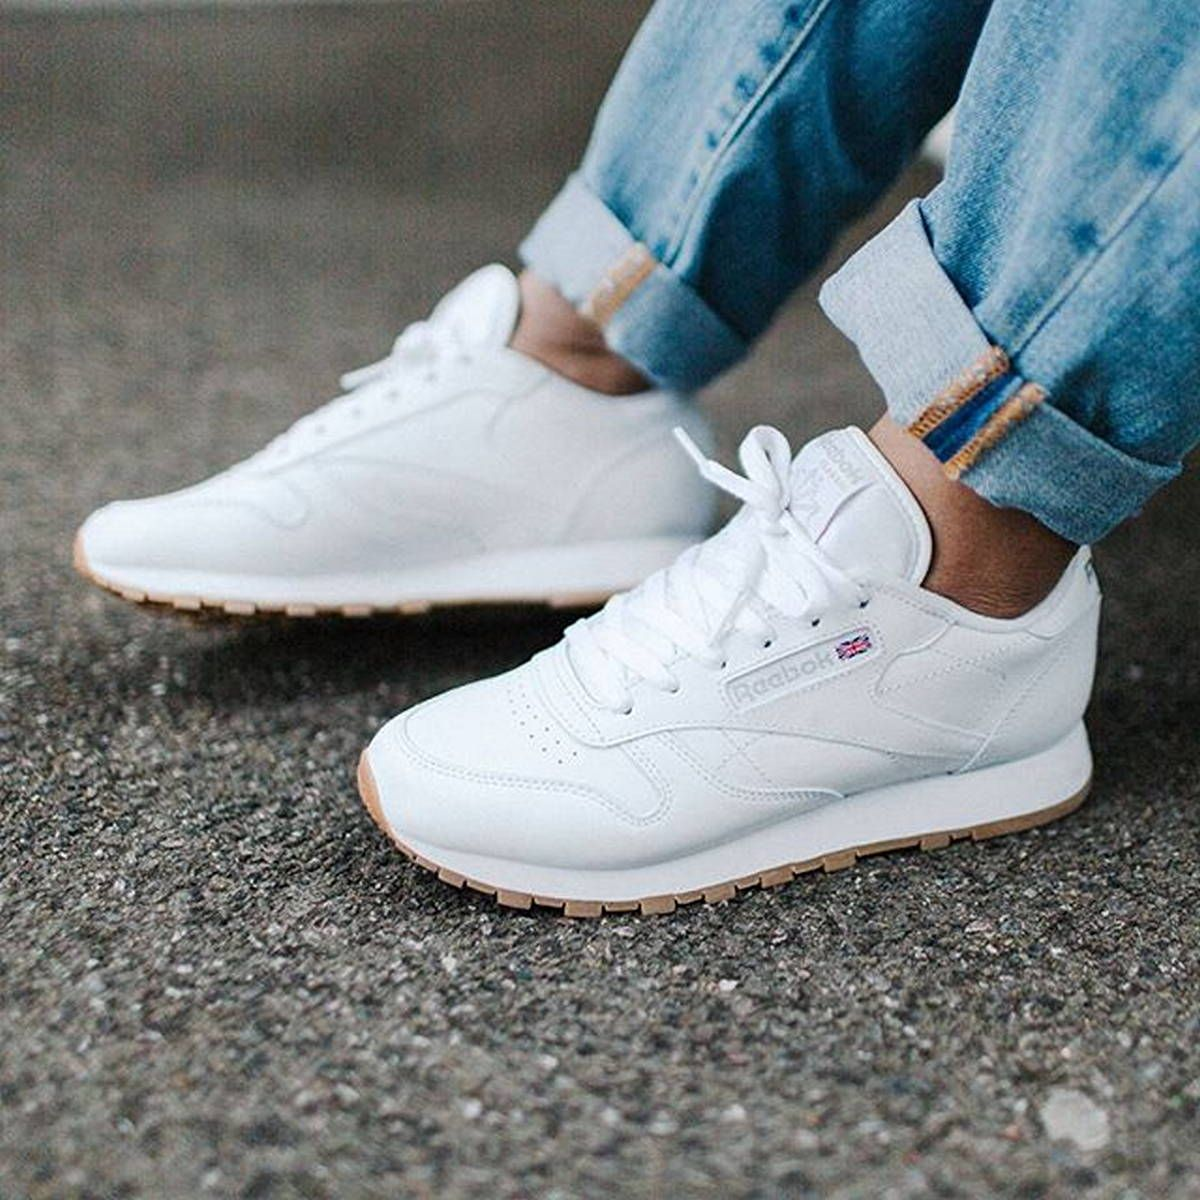 112 Women's White Sneakers Outfit Idea Hvide sneakers  White sneakers